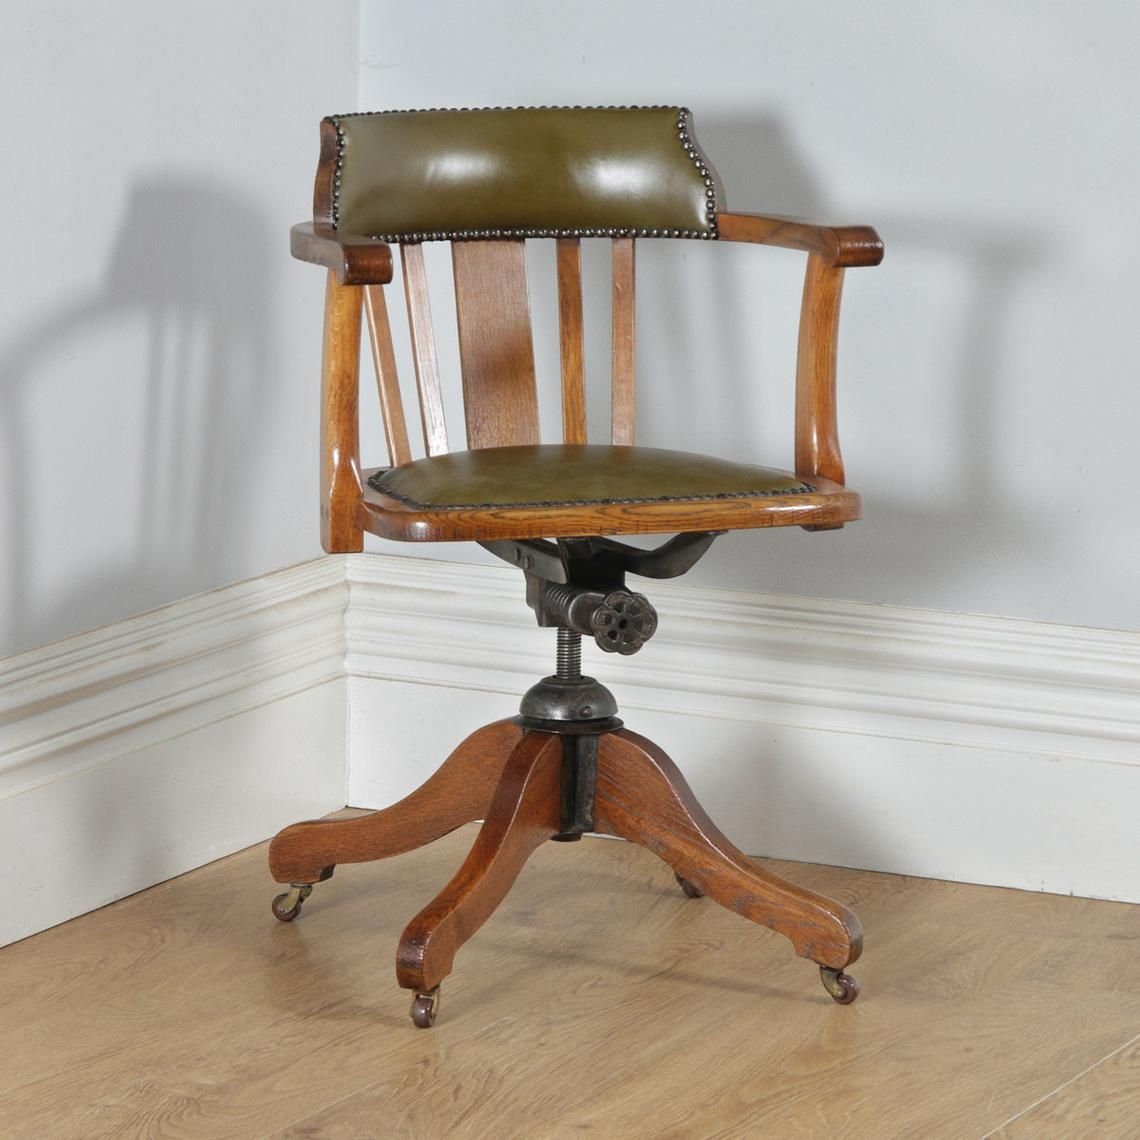 Image 0 Antique Desk Chair Office Armchair Chair